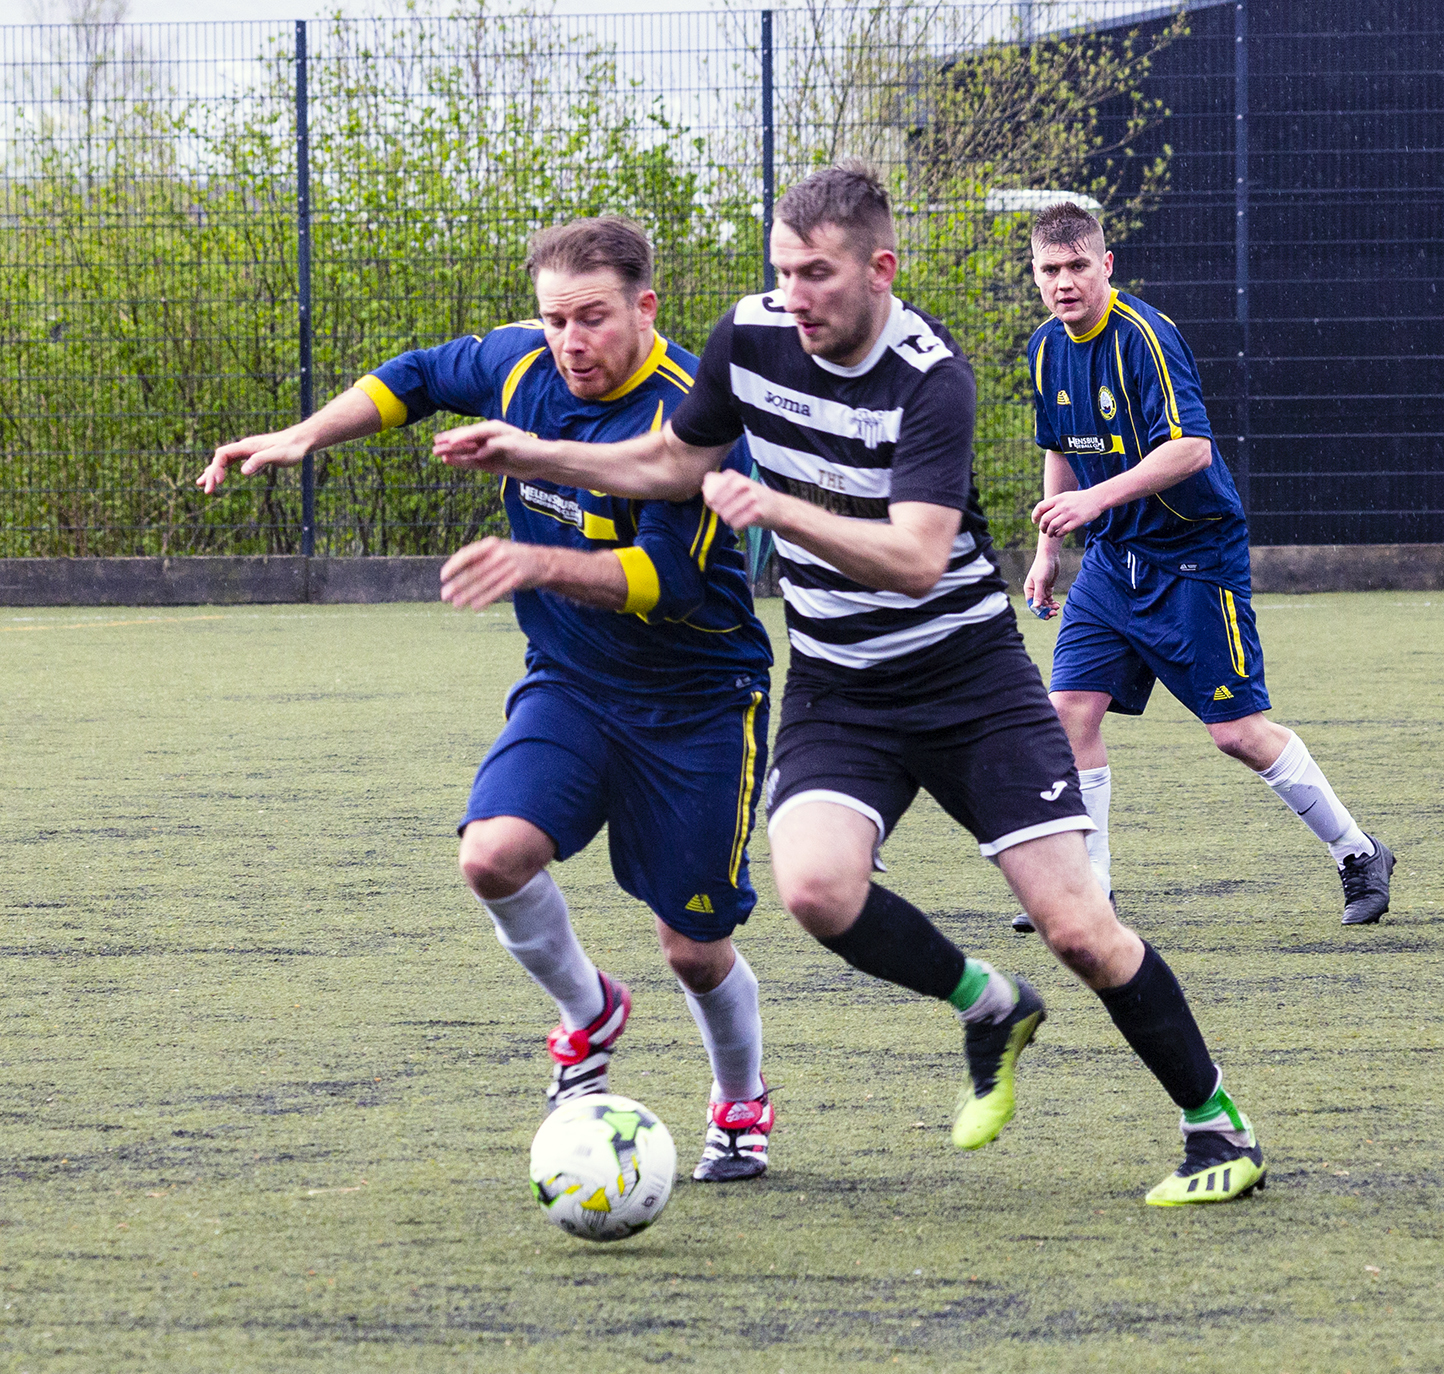 Helensburgh's win over Jordanhill on May 15 was their 13th league victory in a row